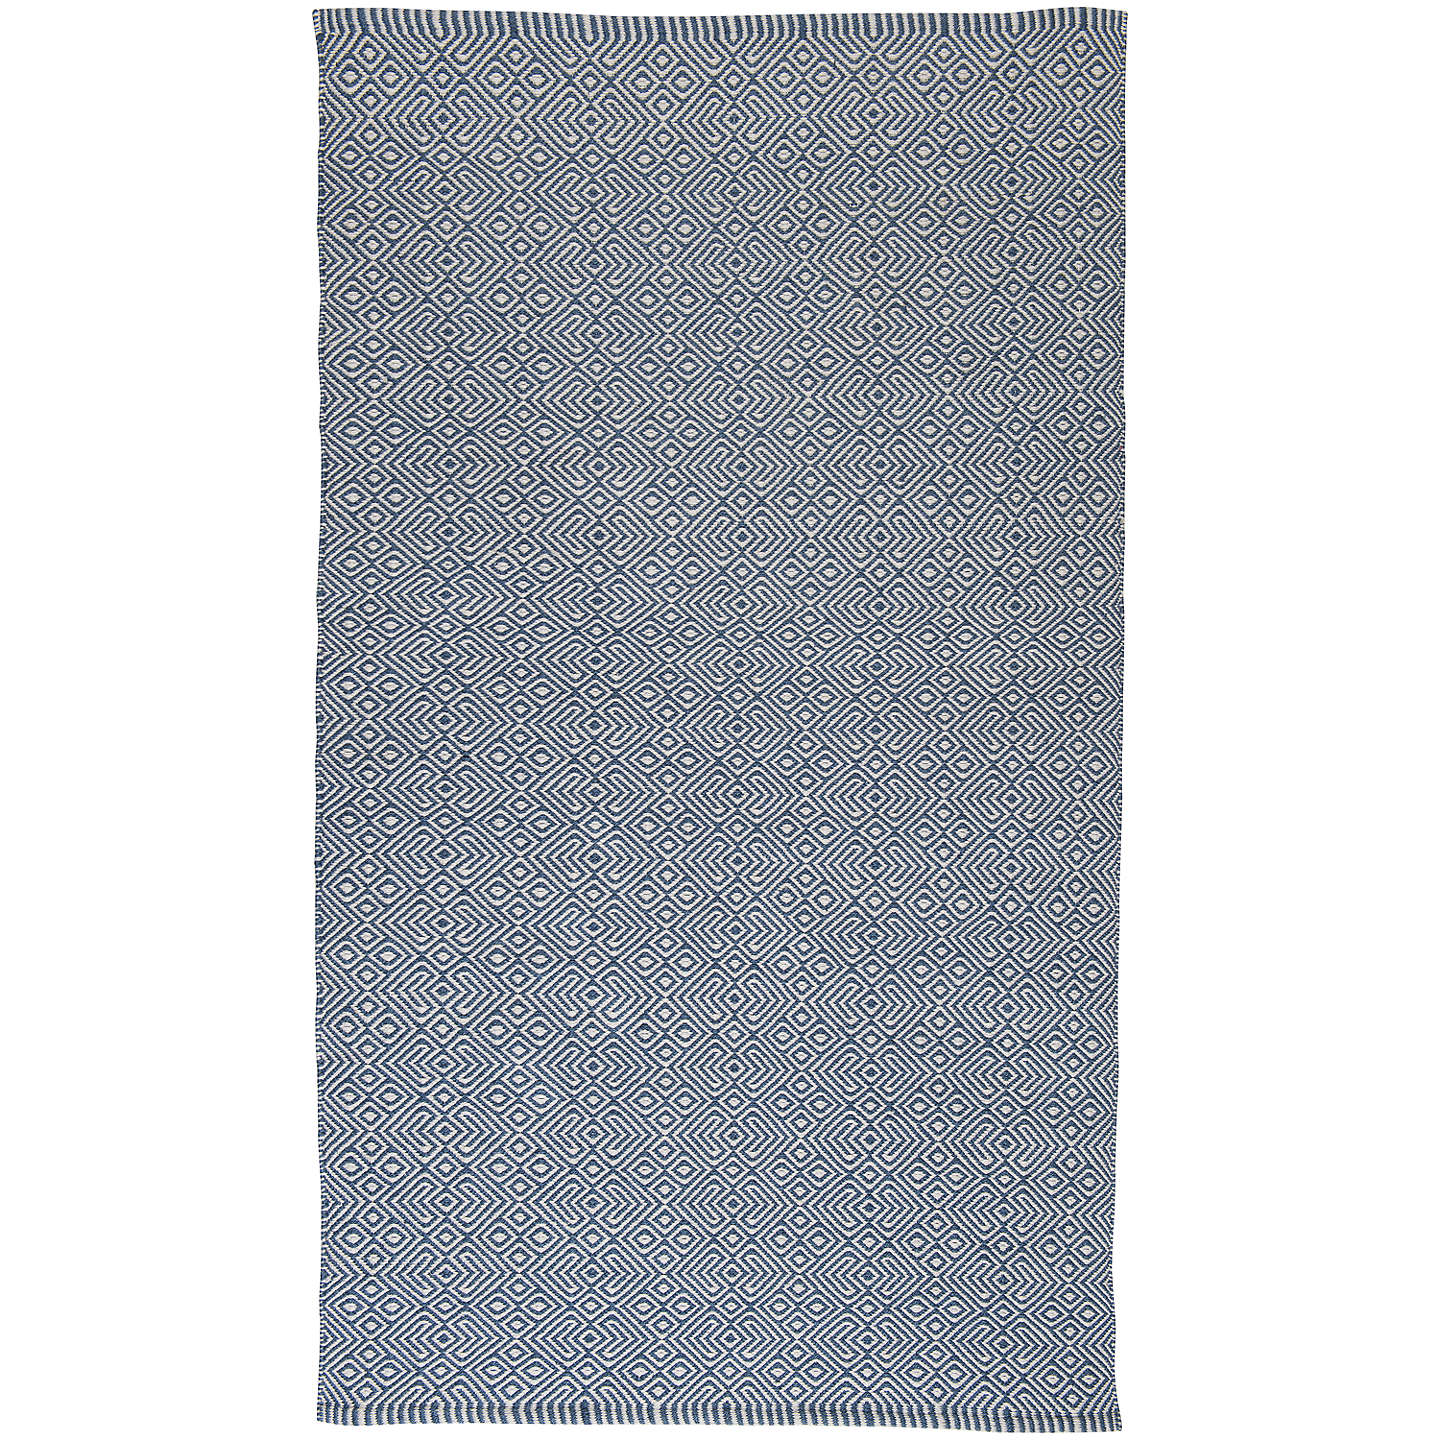 Weaver Green Provence Collection Washable Outdoor Rug Navy L110 X W60cm Online At Johnlewis